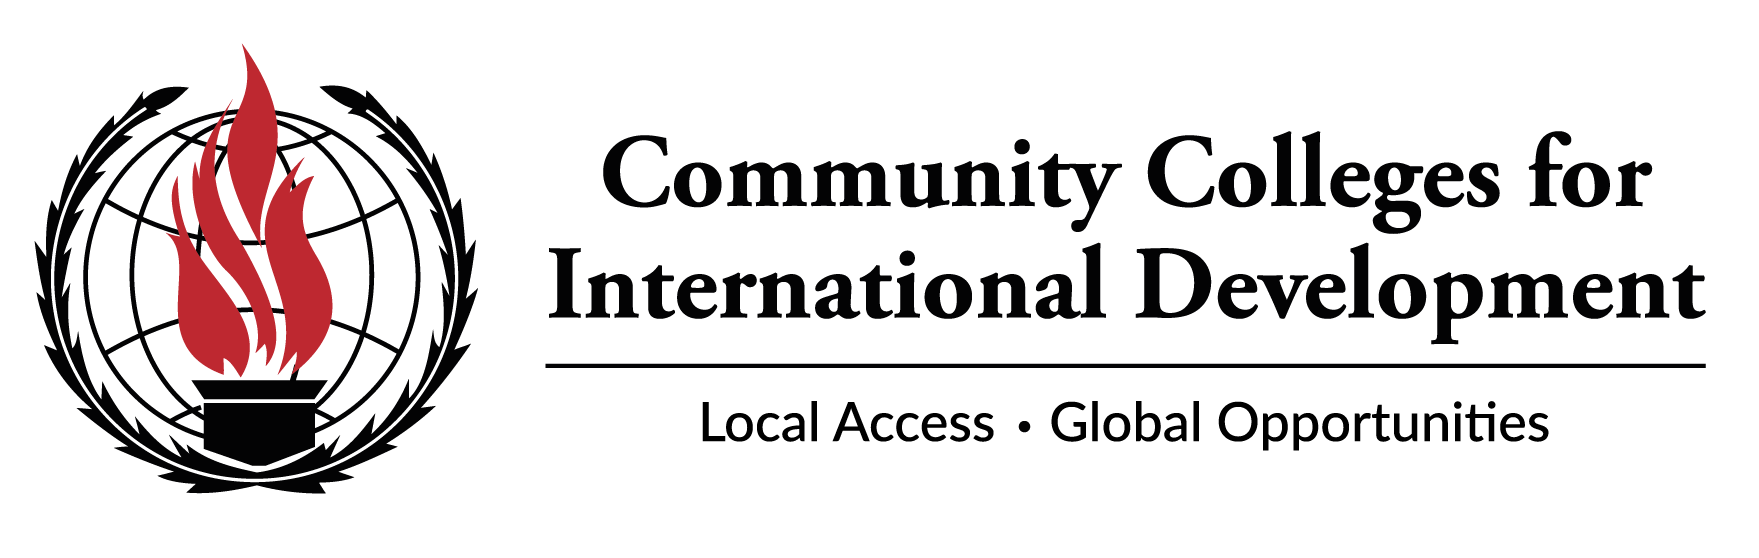 Community Colleges for International Development logo